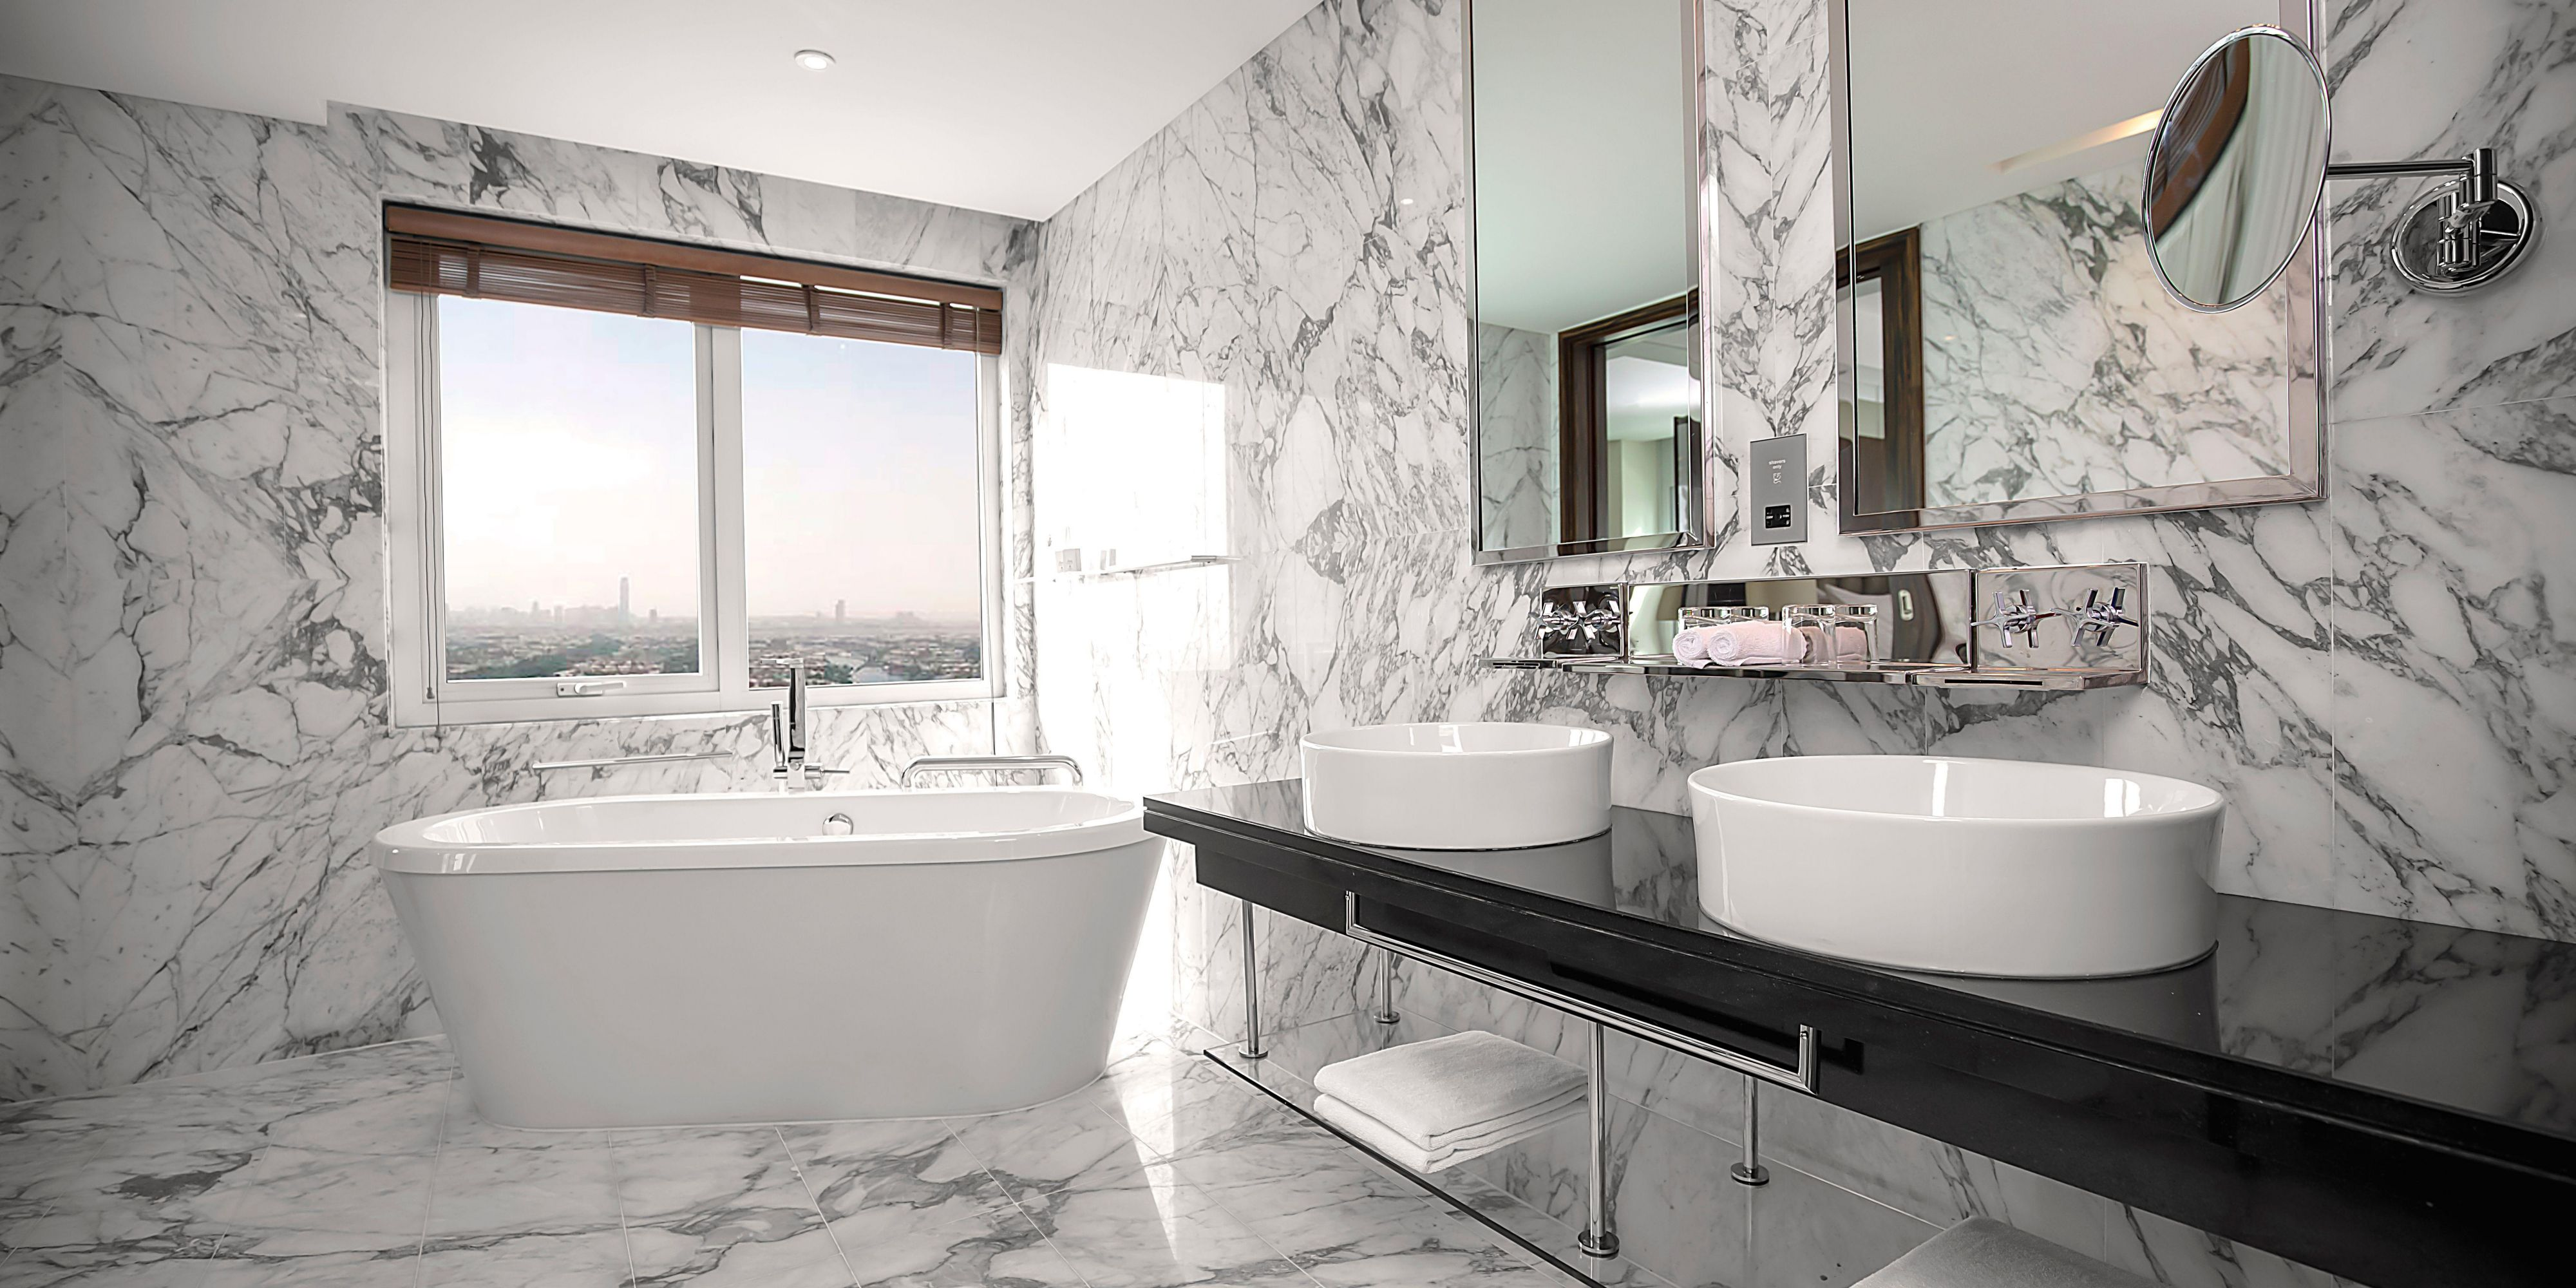 Feel the zen with our stand-alone bathtub and spacious bathroom